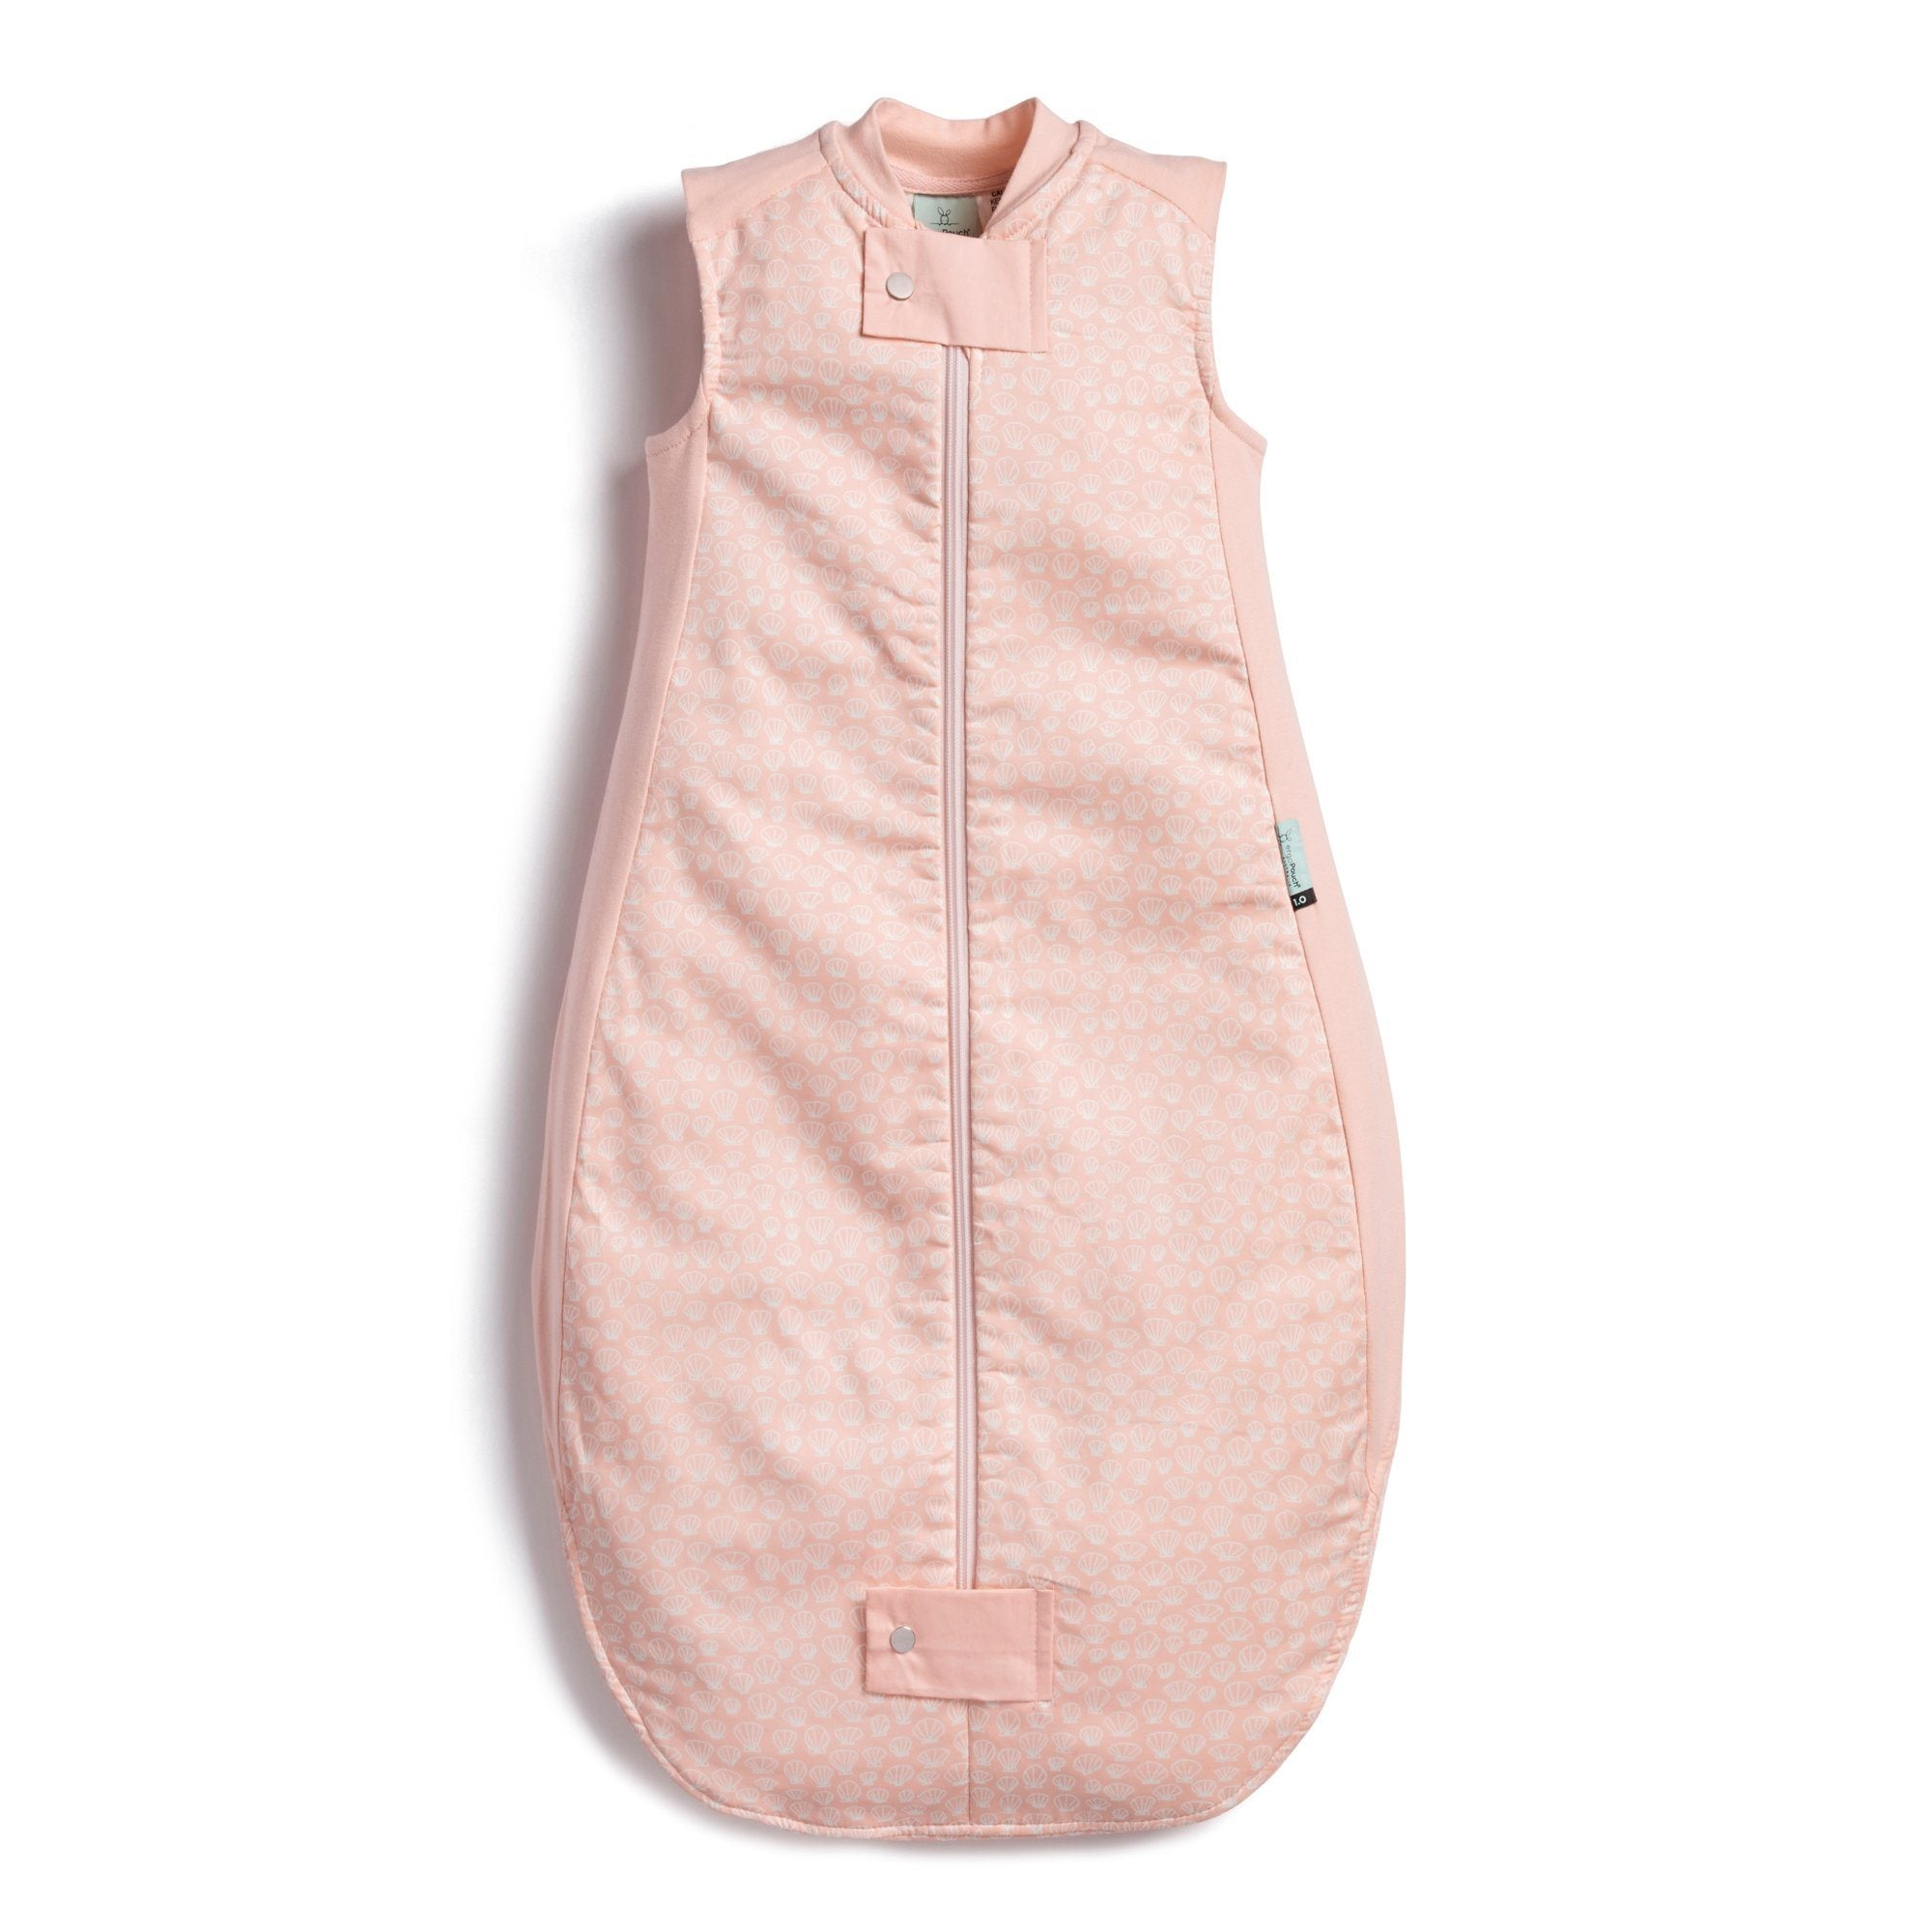 Sheeting Sleeping Bag 1.0 tog (Shells)